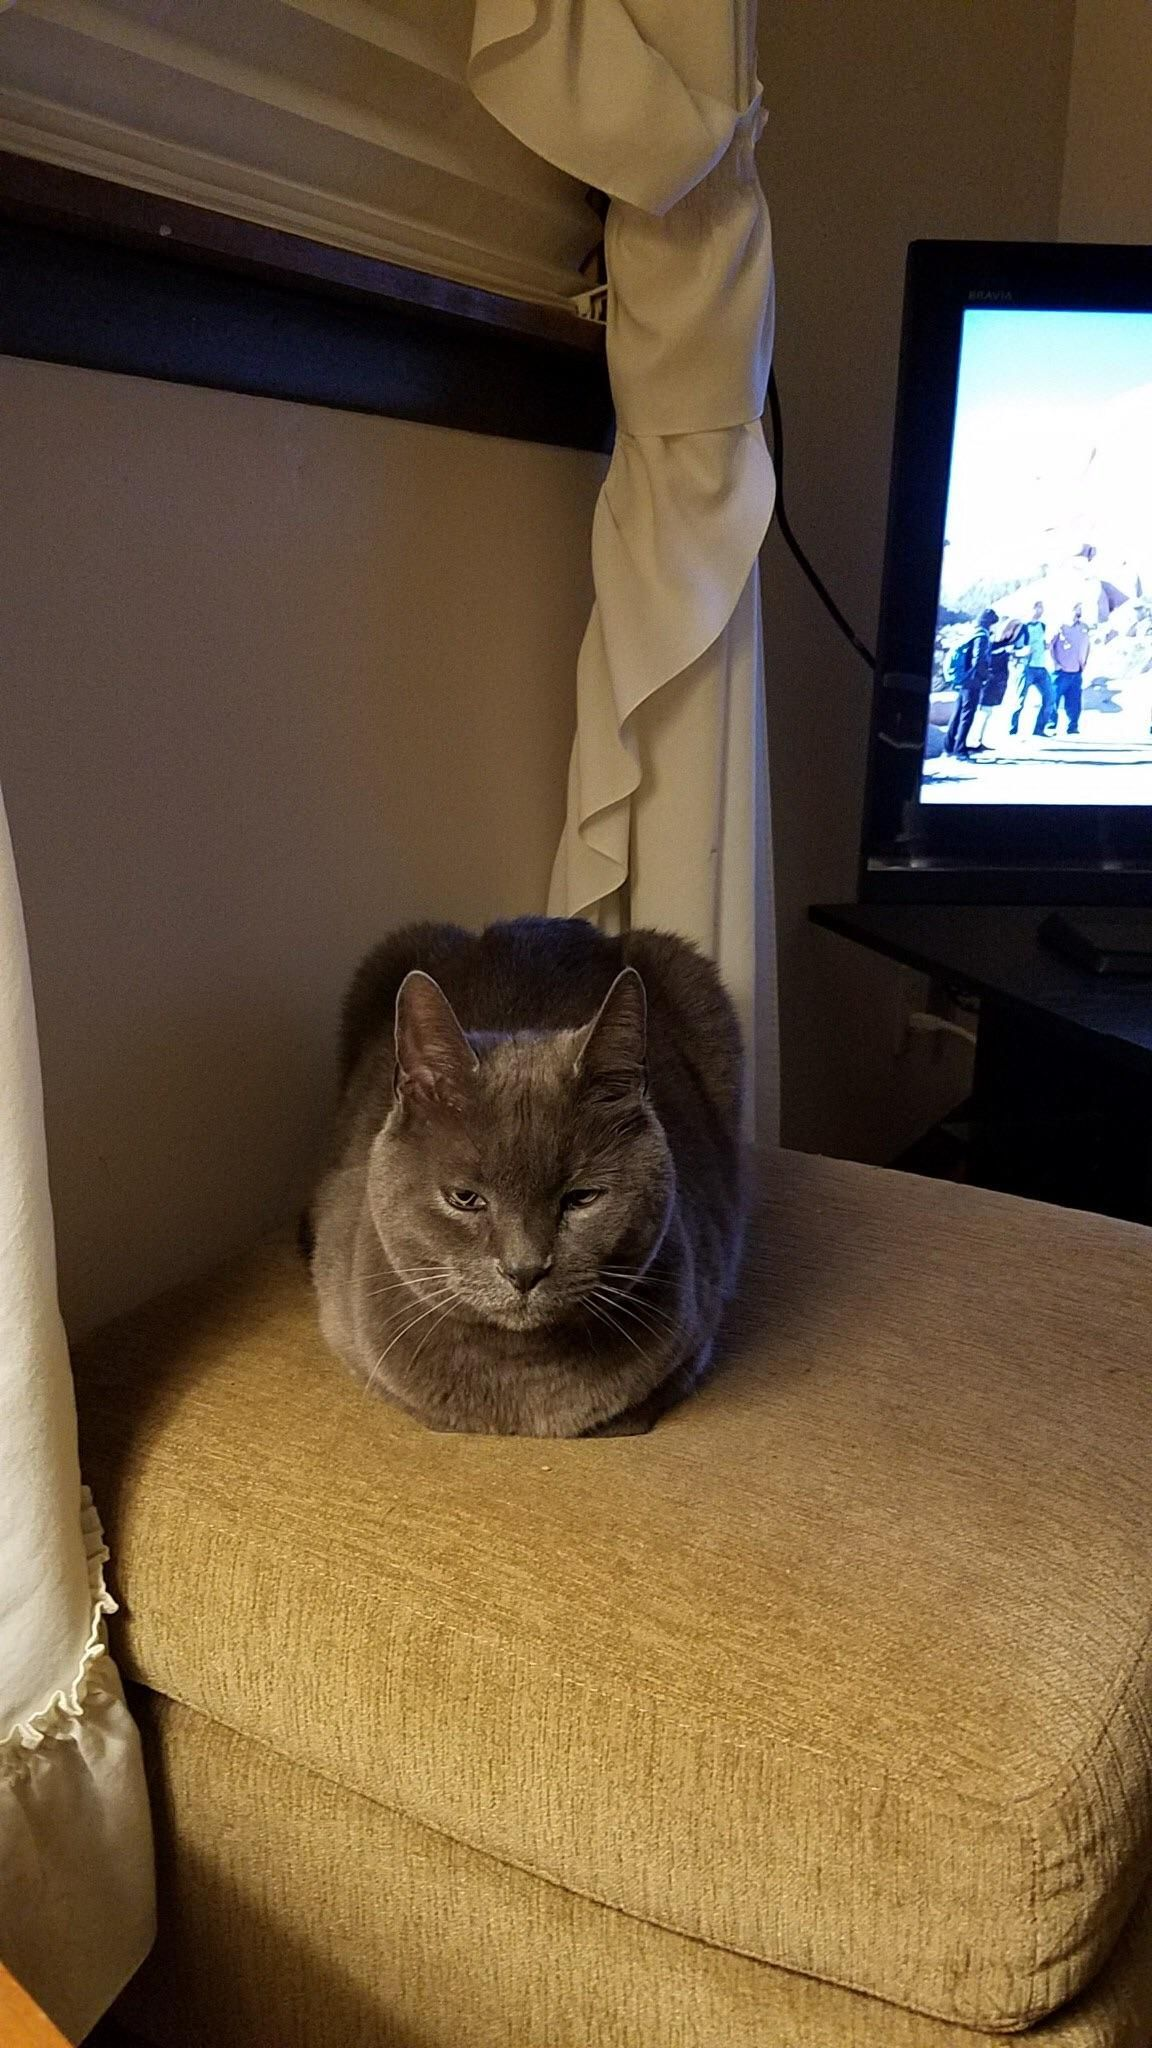 Squinty eyes loaf. (With images) Cat s, Cats, Animals